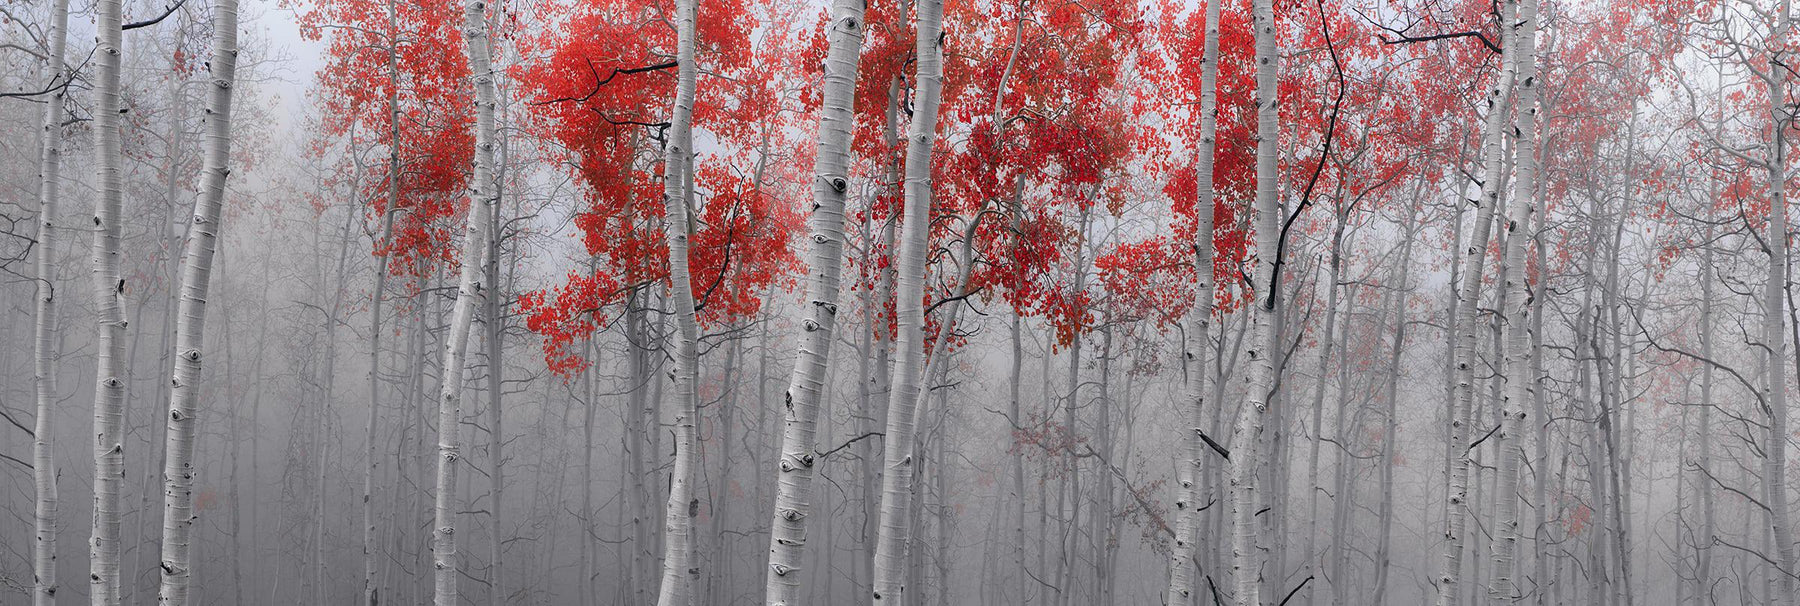 Misty white birch tree forest covered in red leaves in Deer Valley Utah